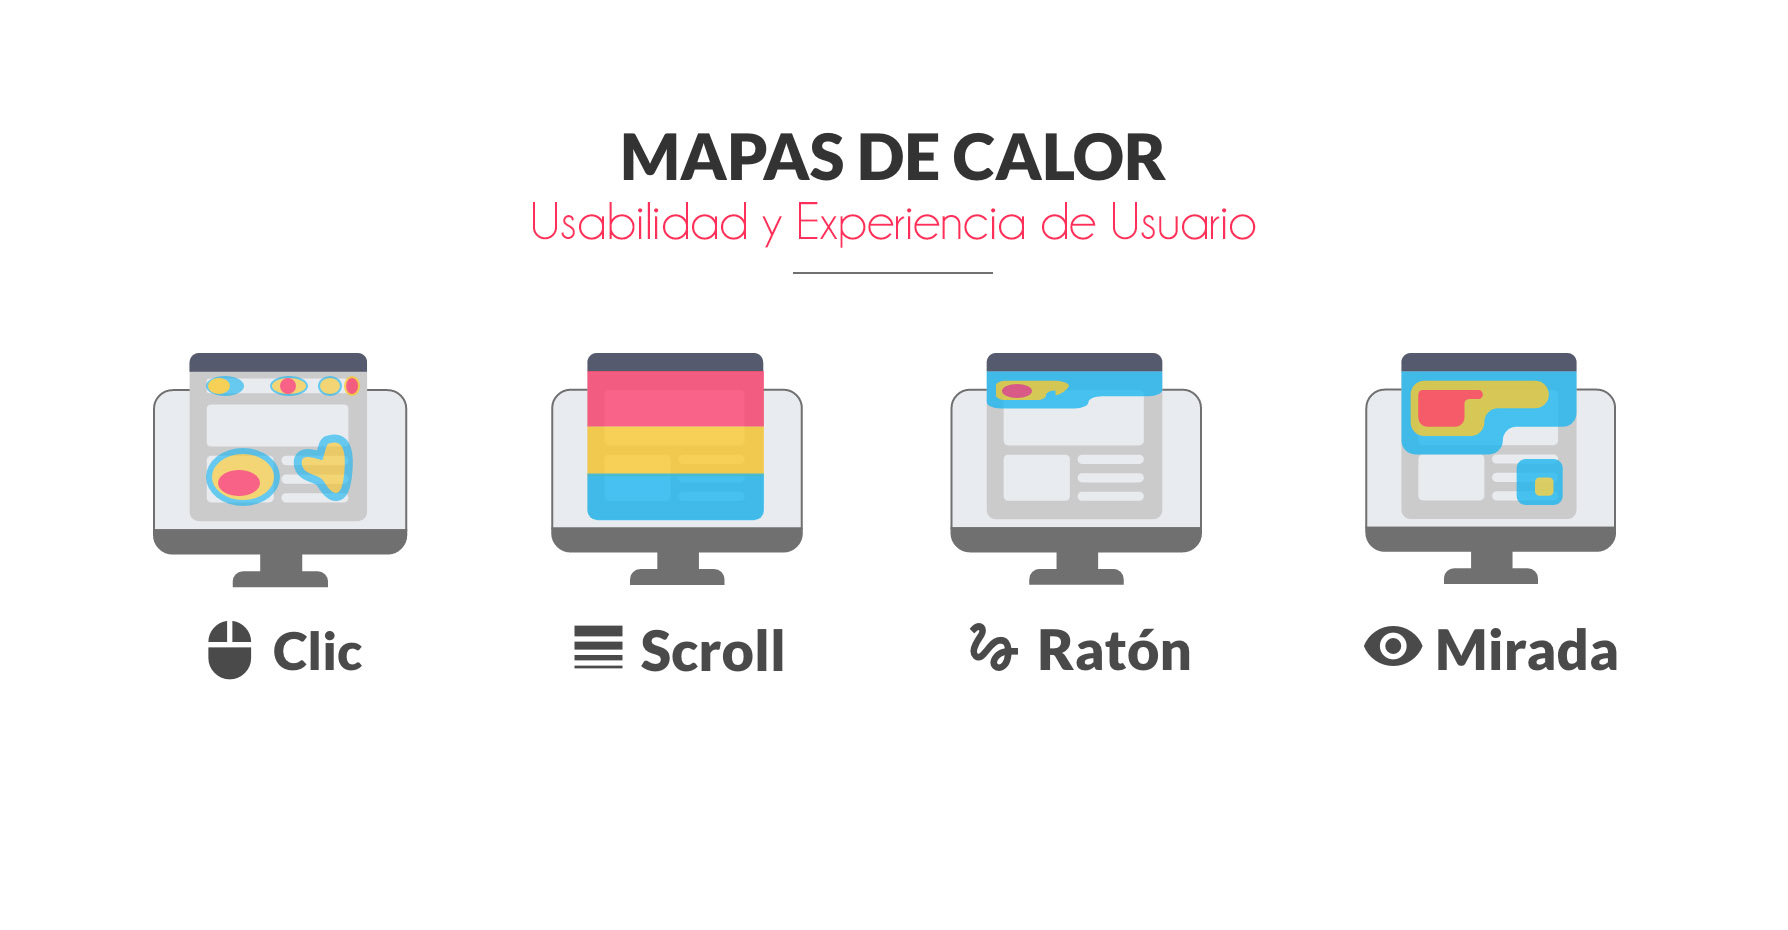 Idimad 360 Agencia de Marketing y Tecnología Diseño Web mapas de calor